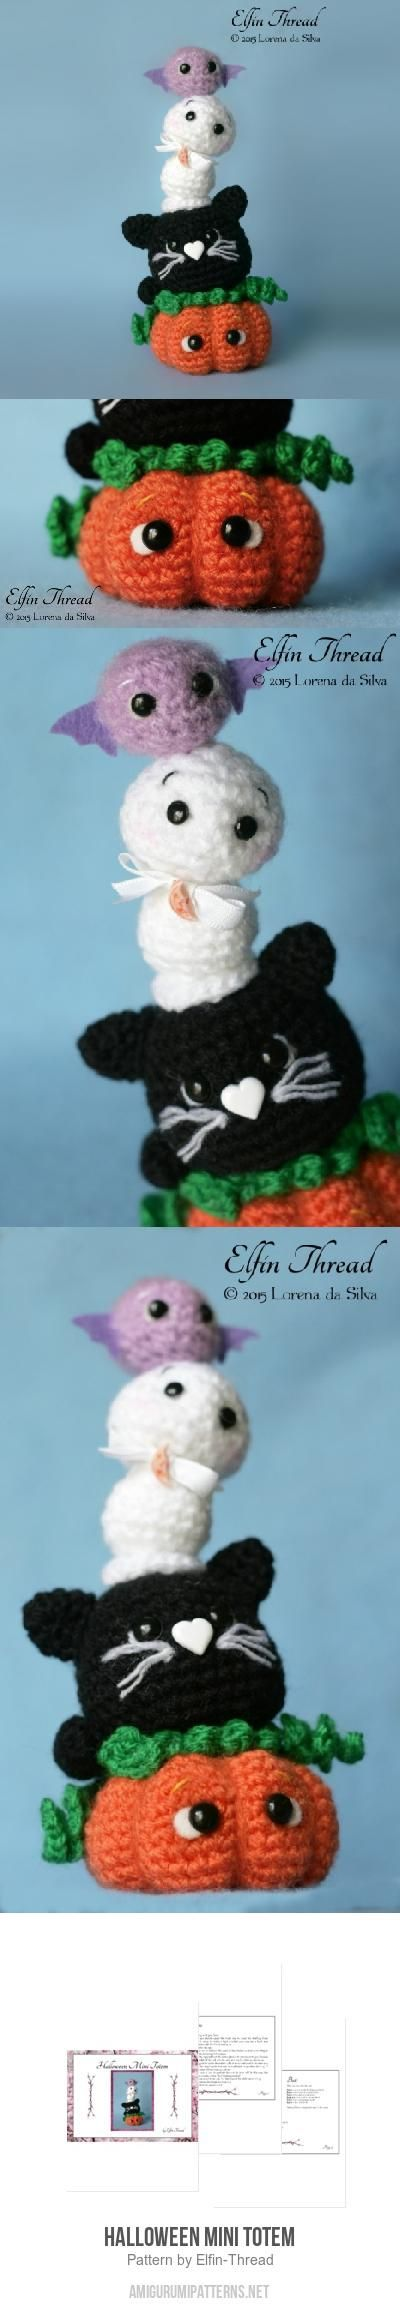 Halloween Mini Totem Amigurumi Pattern | Crochet inspiration ...